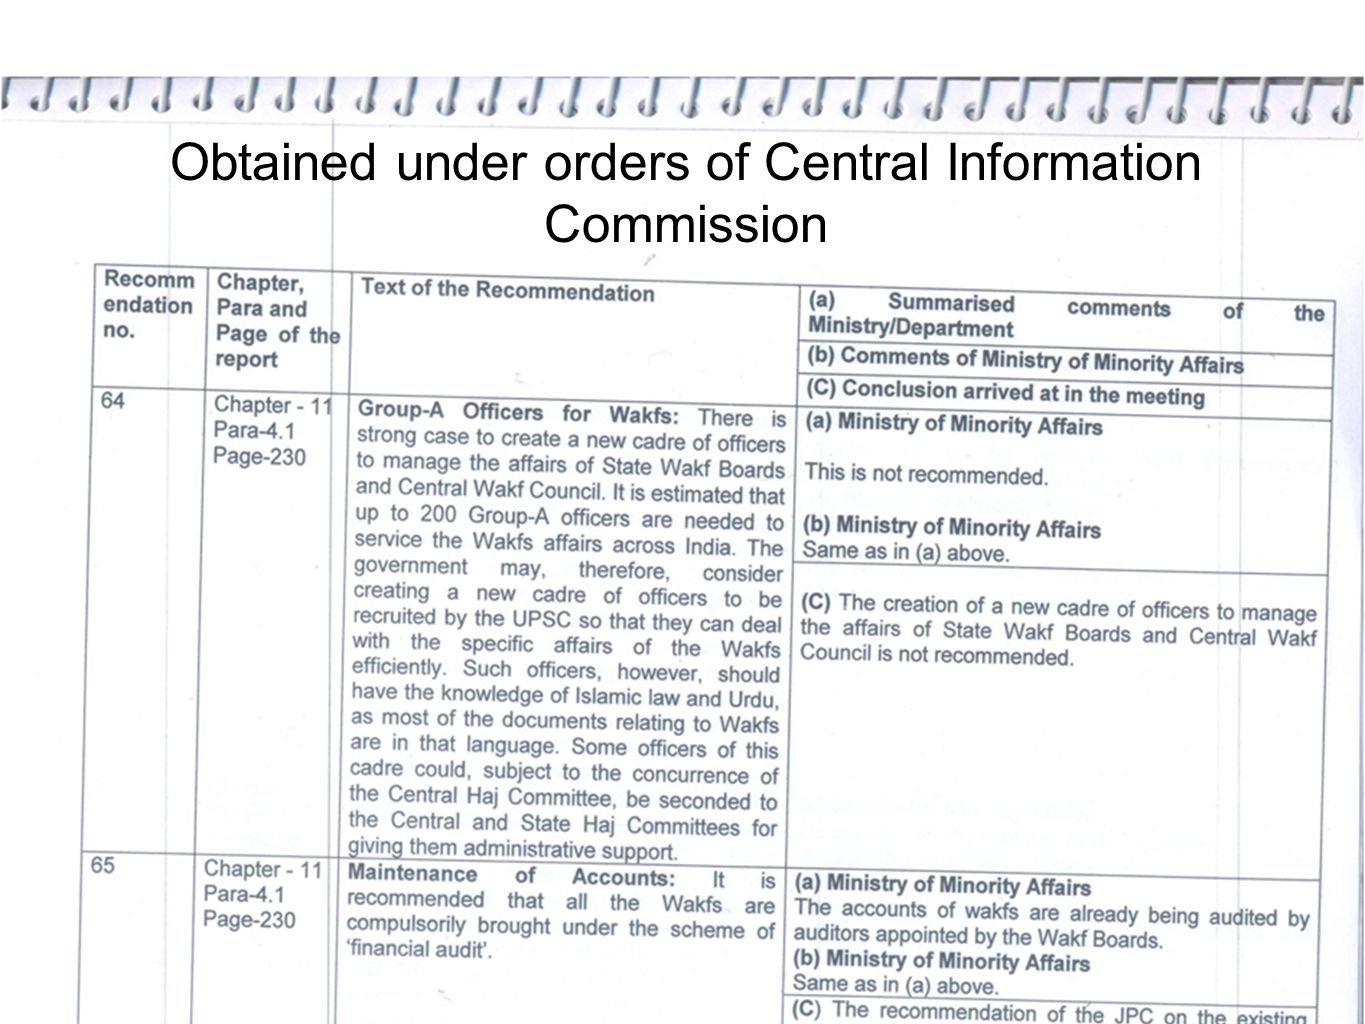 Obtained under orders of Central Information Commission